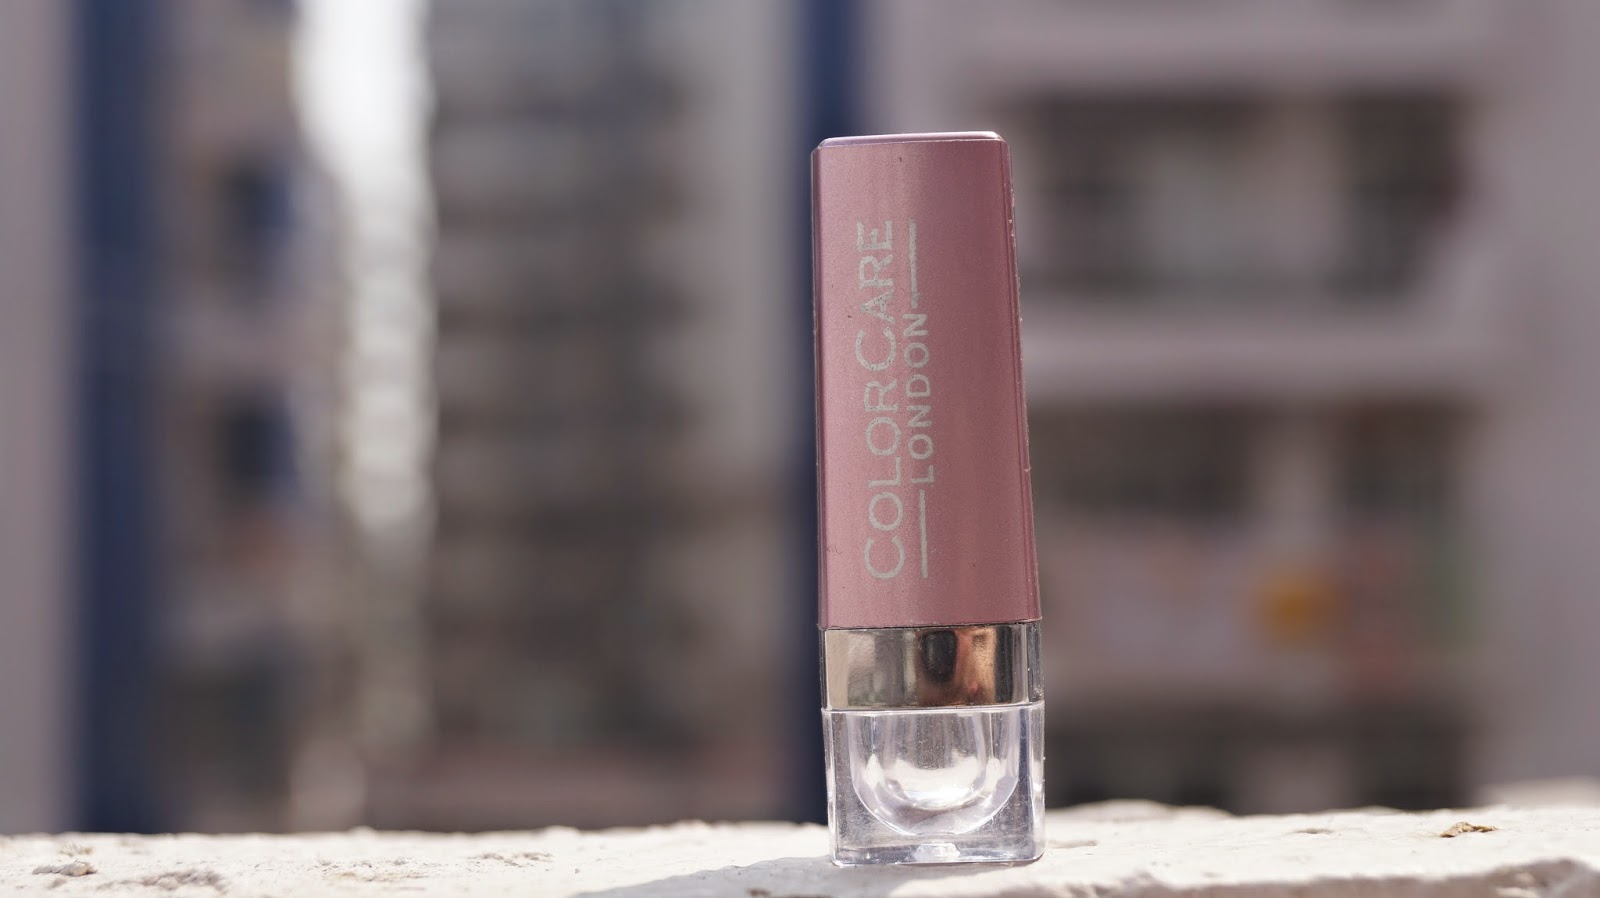 Colour Care Foundation Price - I once carried one of the lipsticks in my bag and when i came back the cap was out and the lipstick bullet was damaged i am highly disappointed with